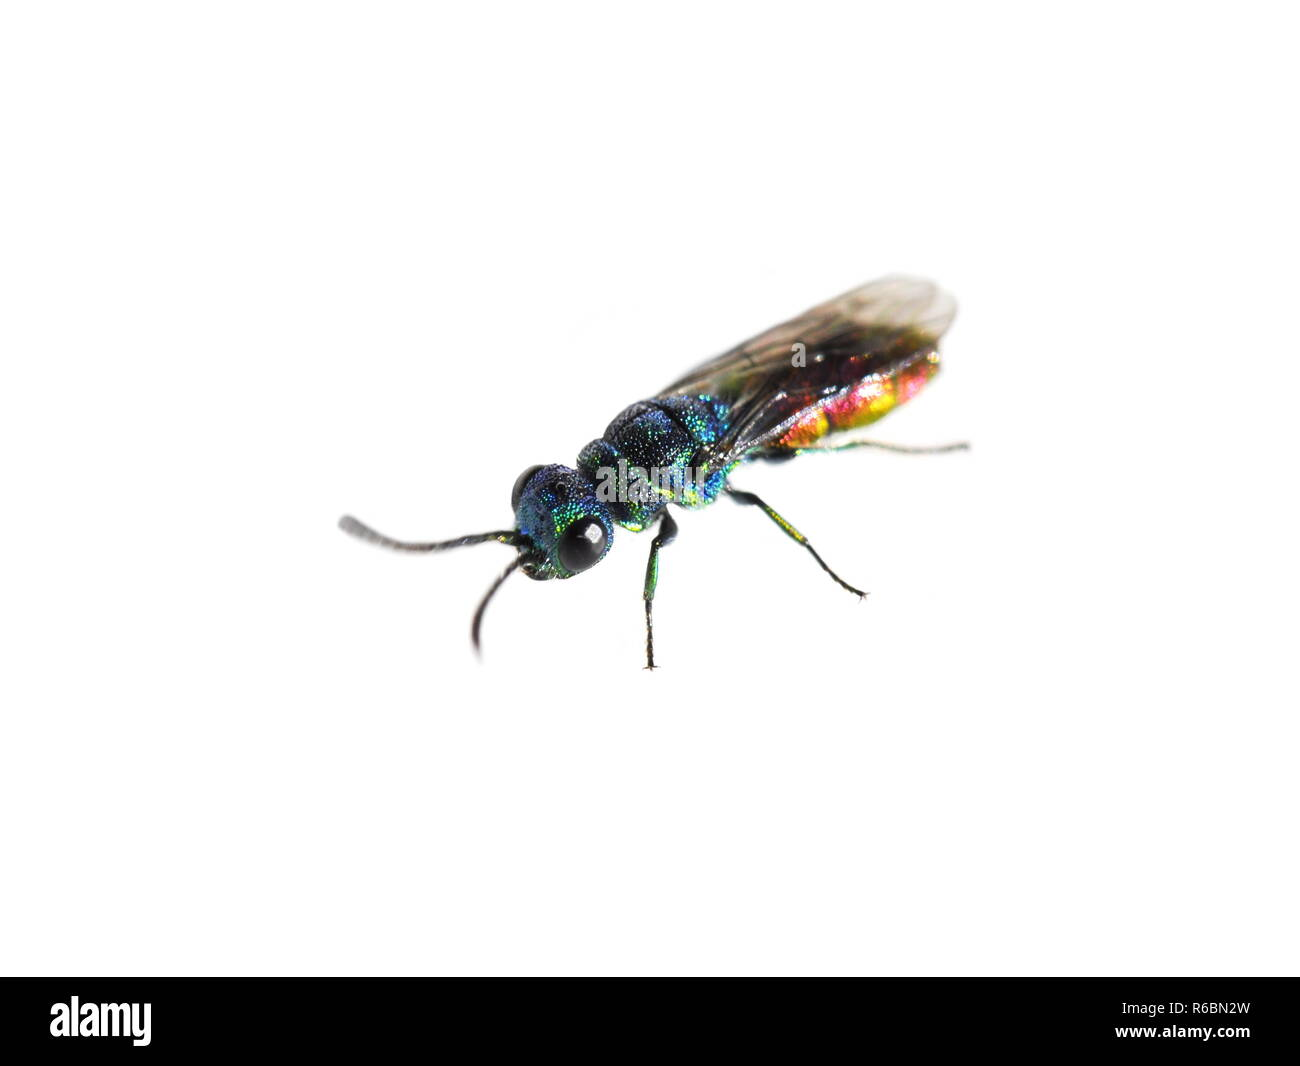 A colorful Chrysis cuckoo wasp on white background - Stock Image